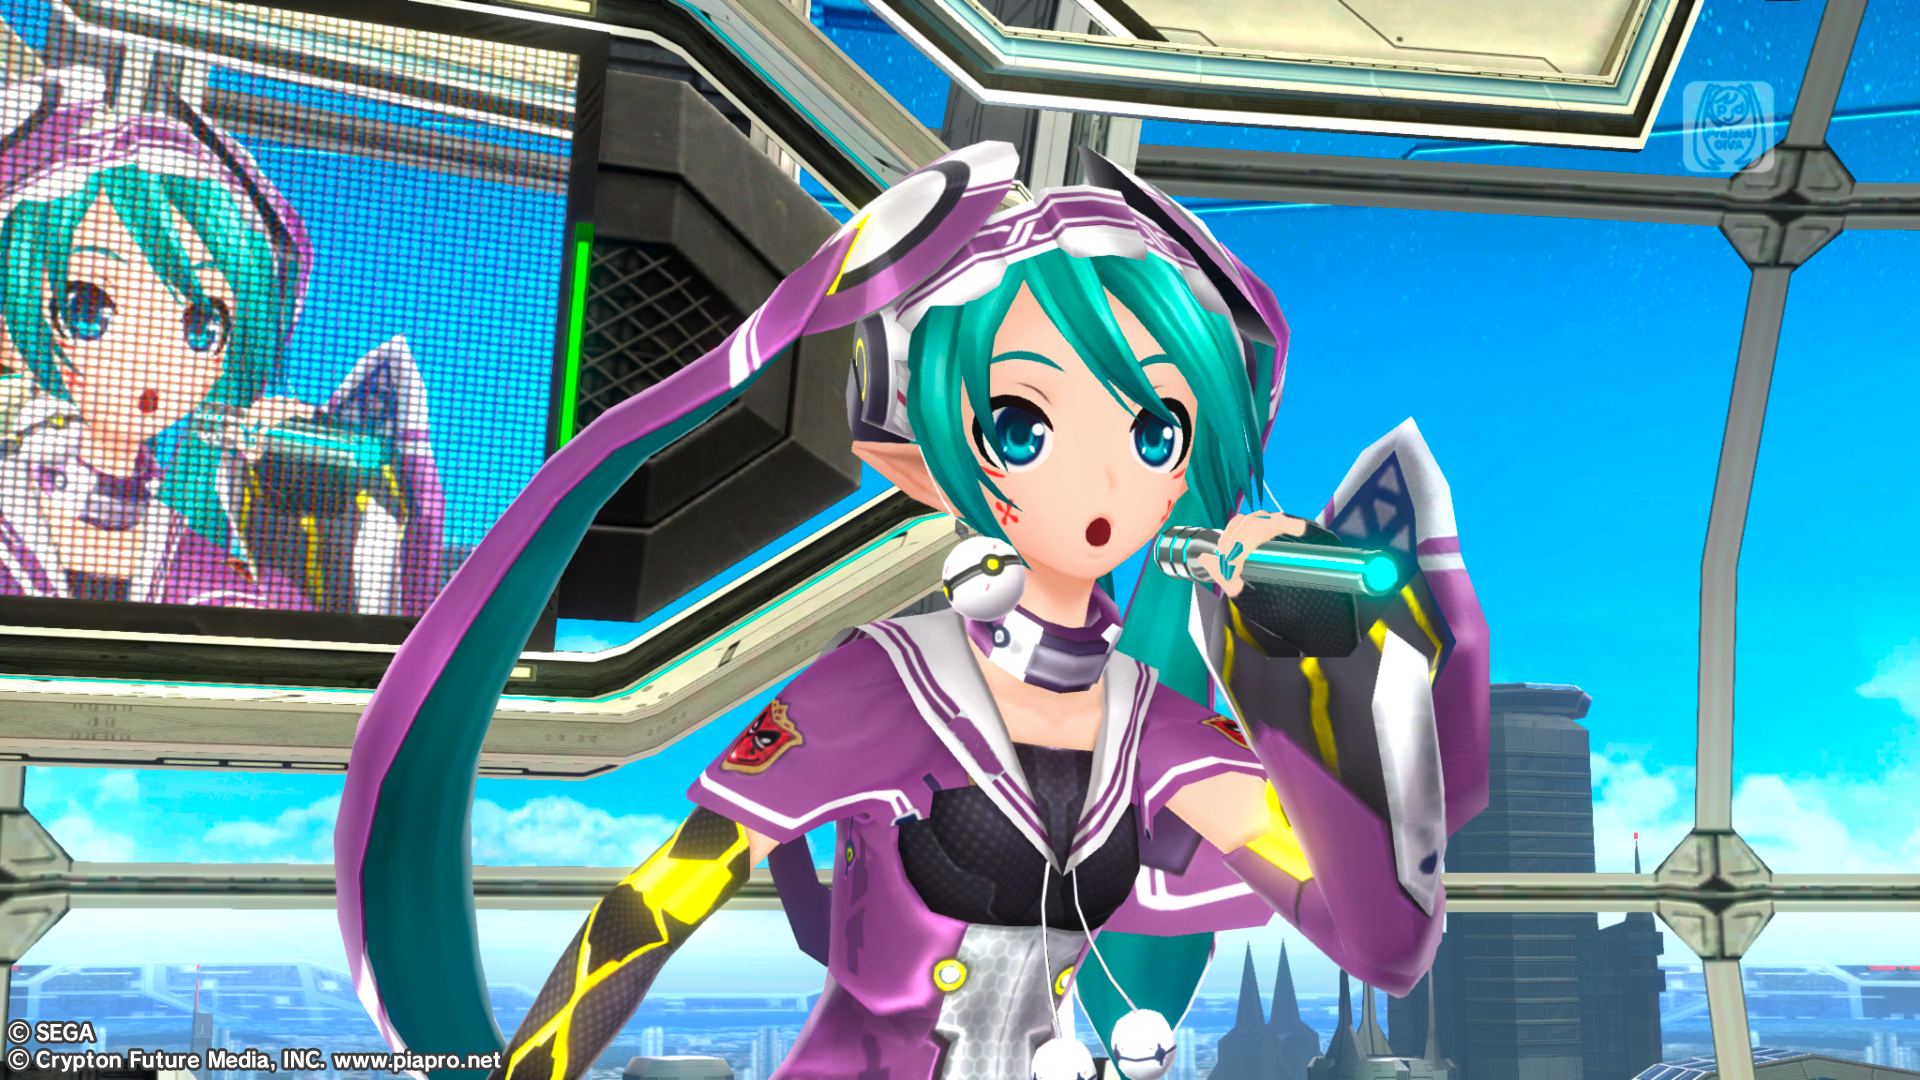 Project diva f 2nd announced for ps vita and ps3 - Hatsune miku project diva ...